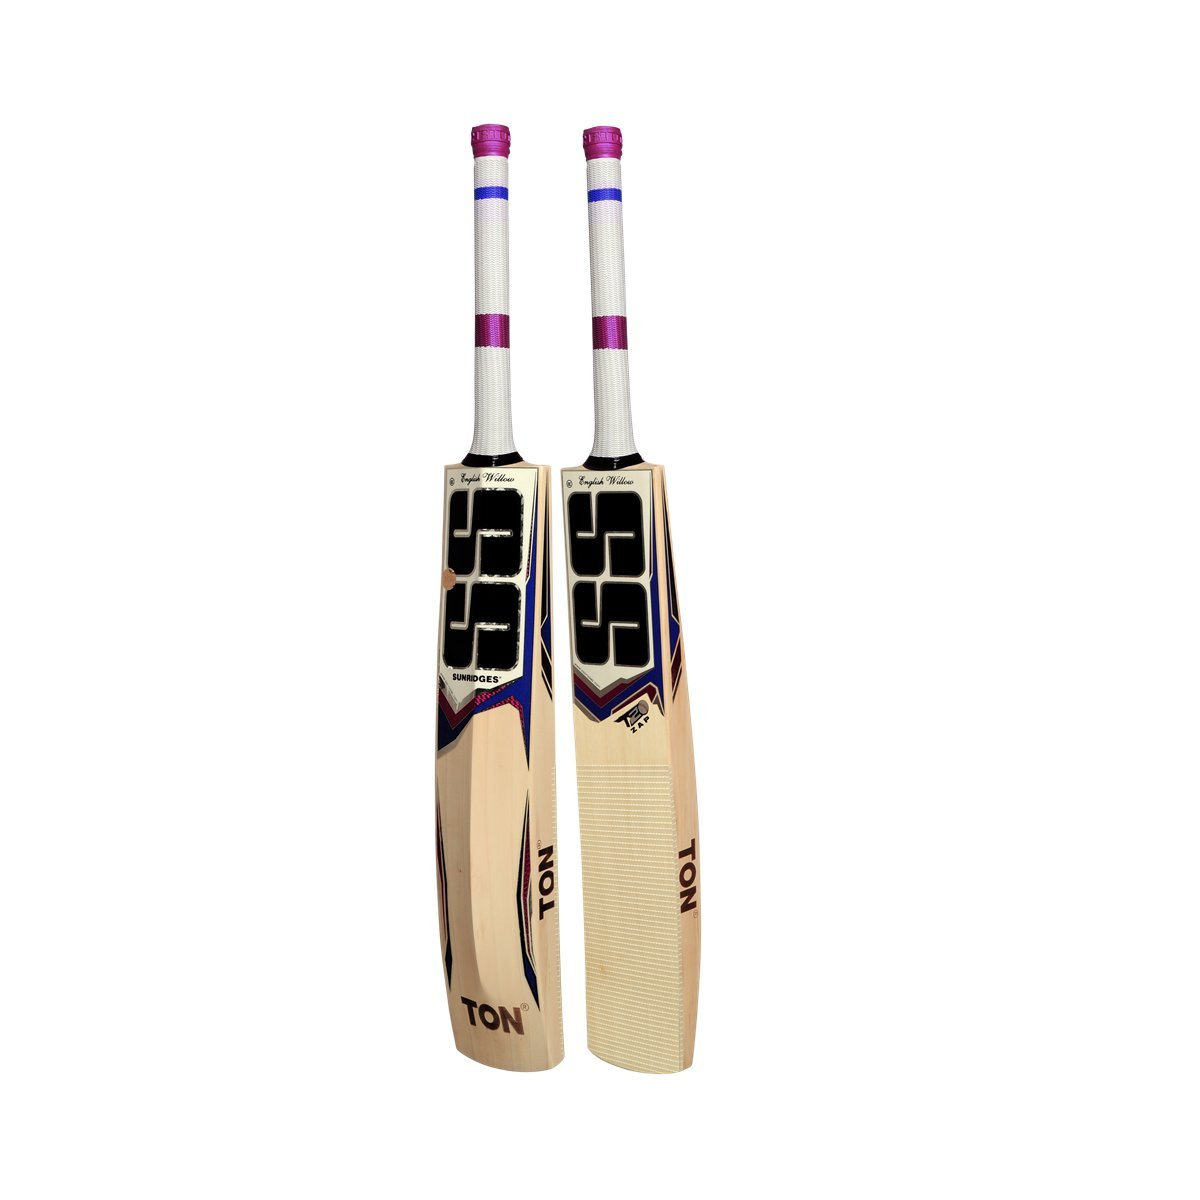 SS T20 Zap English Willow Cricket Bat (Free Extra SS Grip, Anti scuff Sheet & Bat Cover Included) 2017 Edition